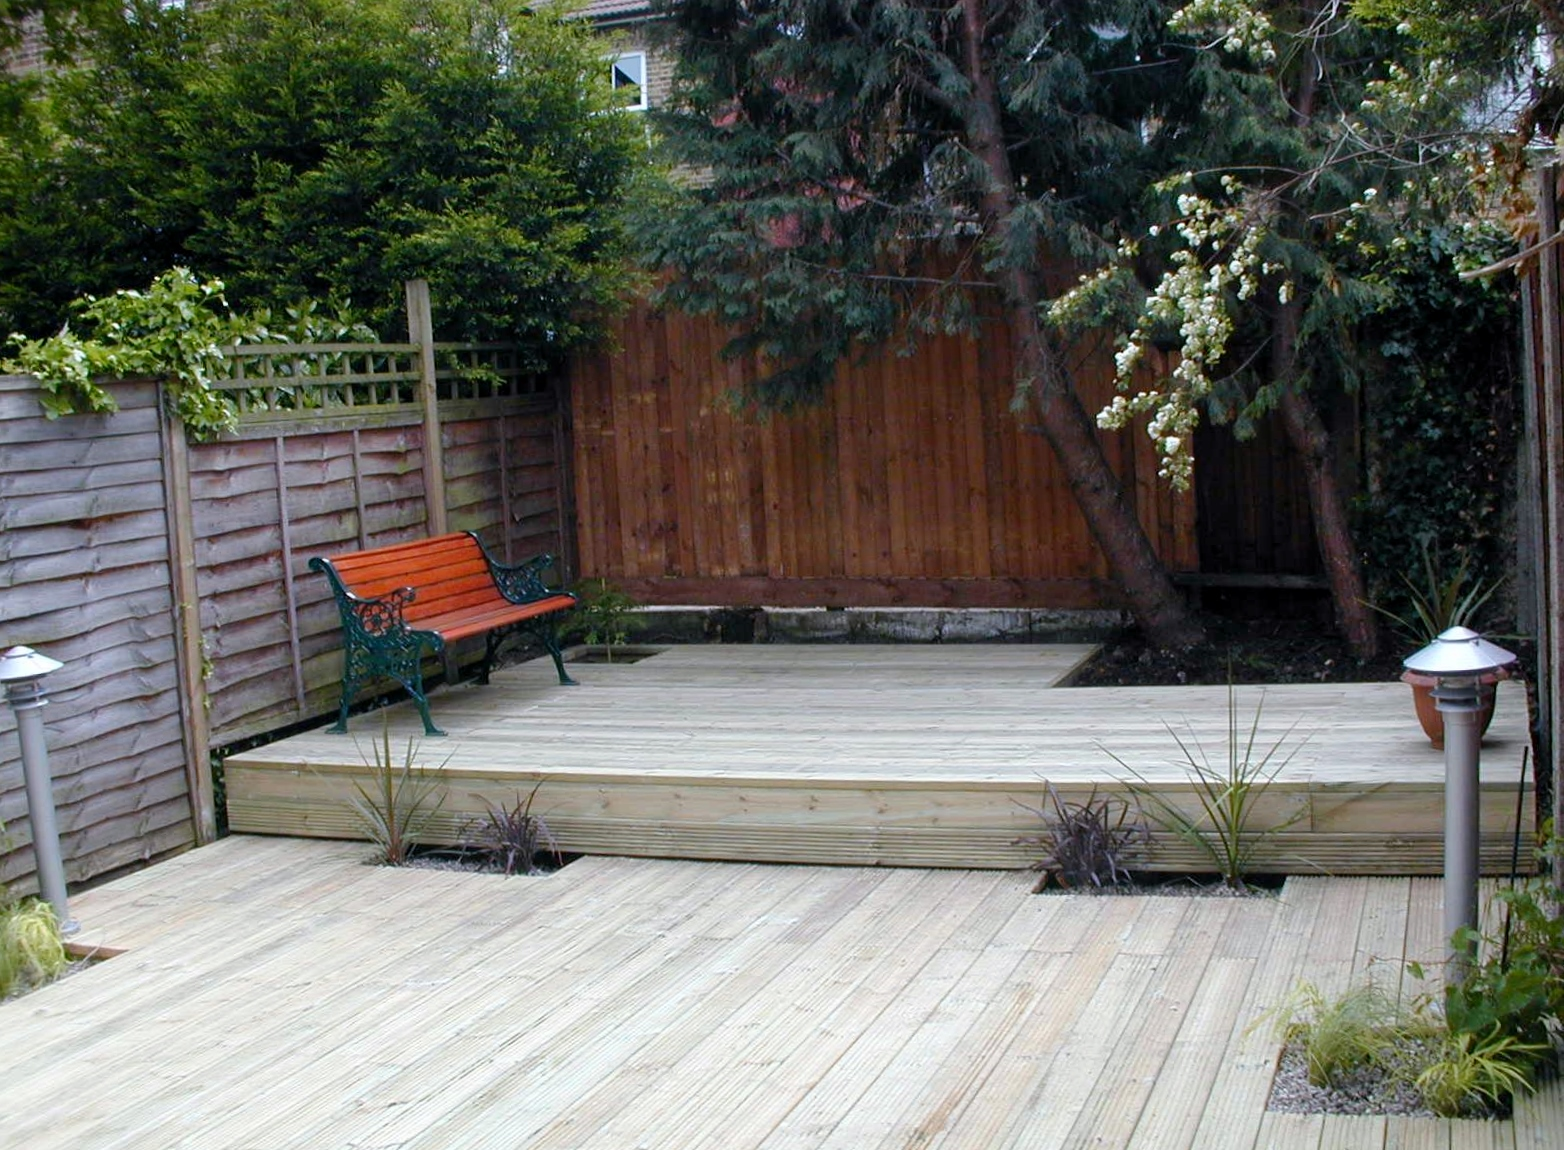 london decking deck builders installers hardwood softwood garden design (69)